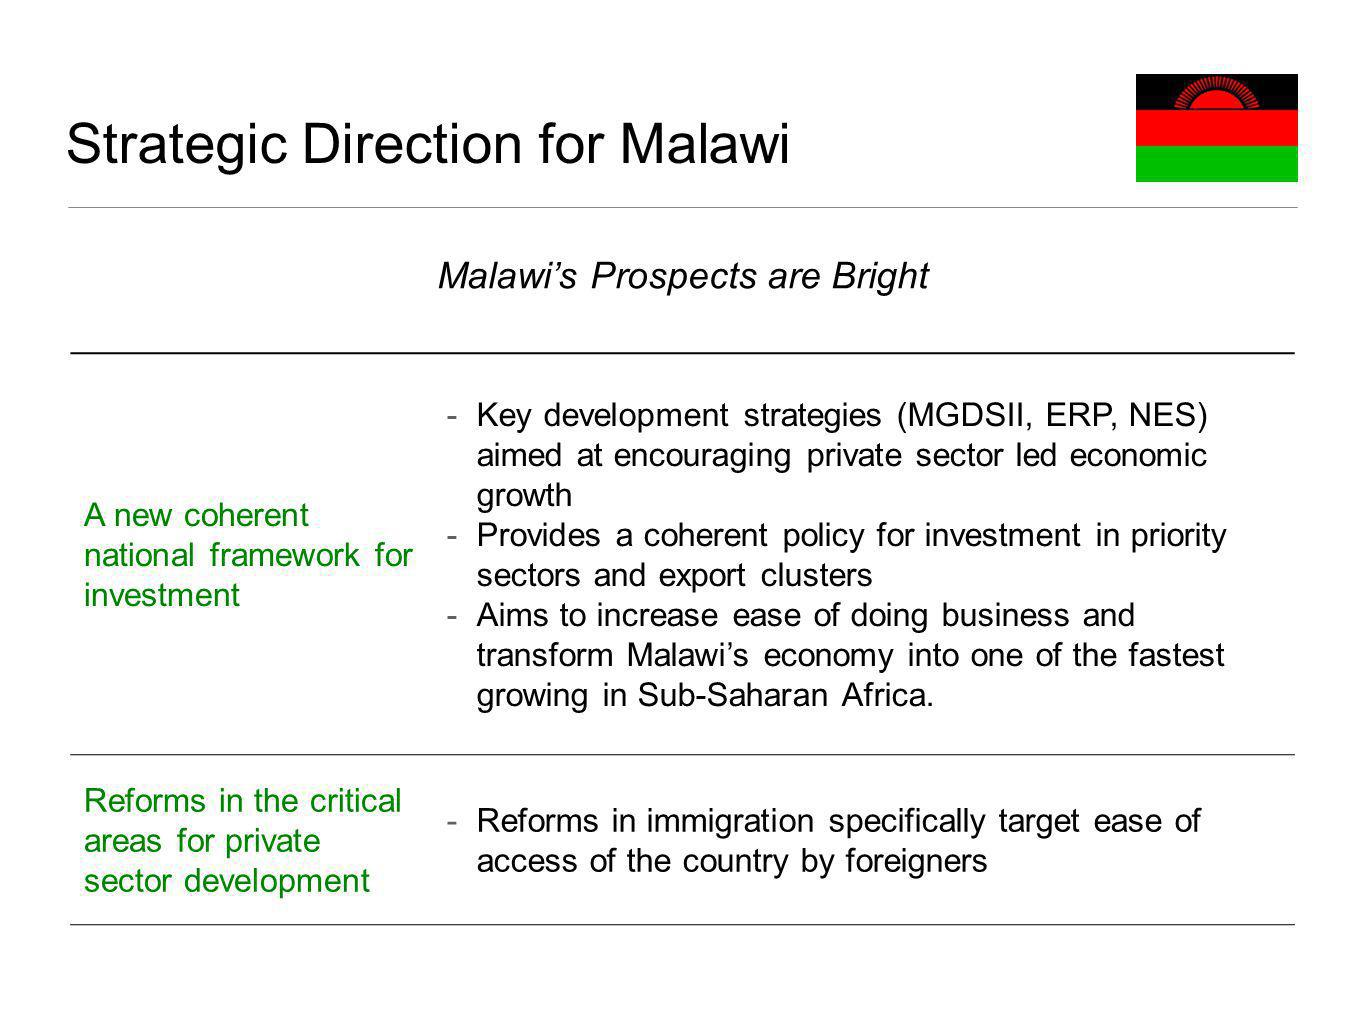 Strategic Direction for Malawi A new coherent national framework for investment -Key development strategies (MGDSII, ERP, NES) aimed at encouraging private sector led economic growth -Provides a coherent policy for investment in priority sectors and export clusters -Aims to increase ease of doing business and transform Malawis economy into one of the fastest growing in Sub-Saharan Africa.